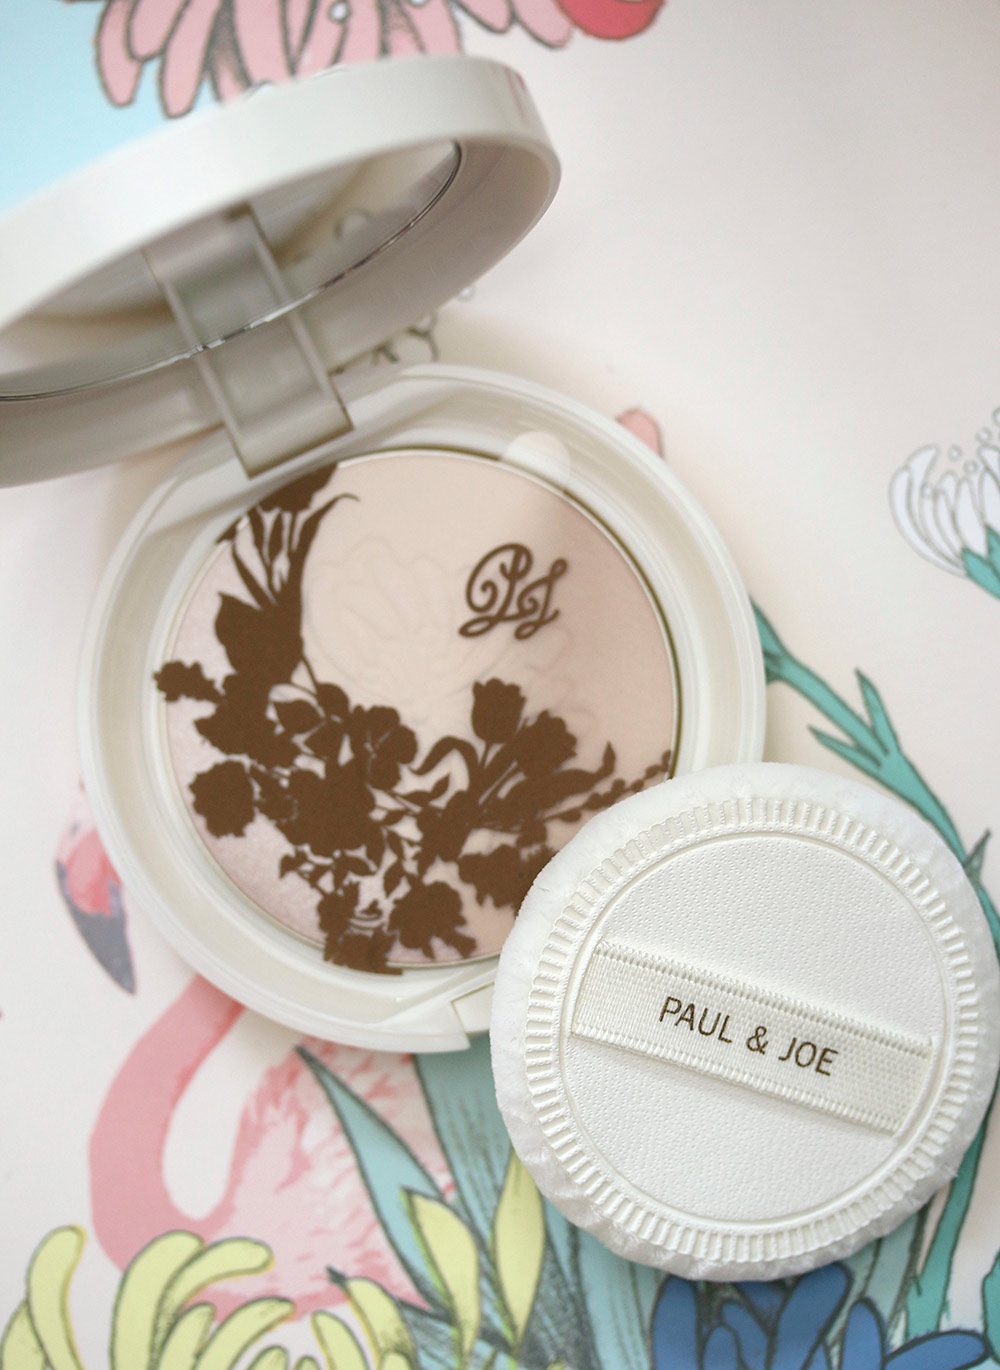 paul joe makeup collection a compact 1